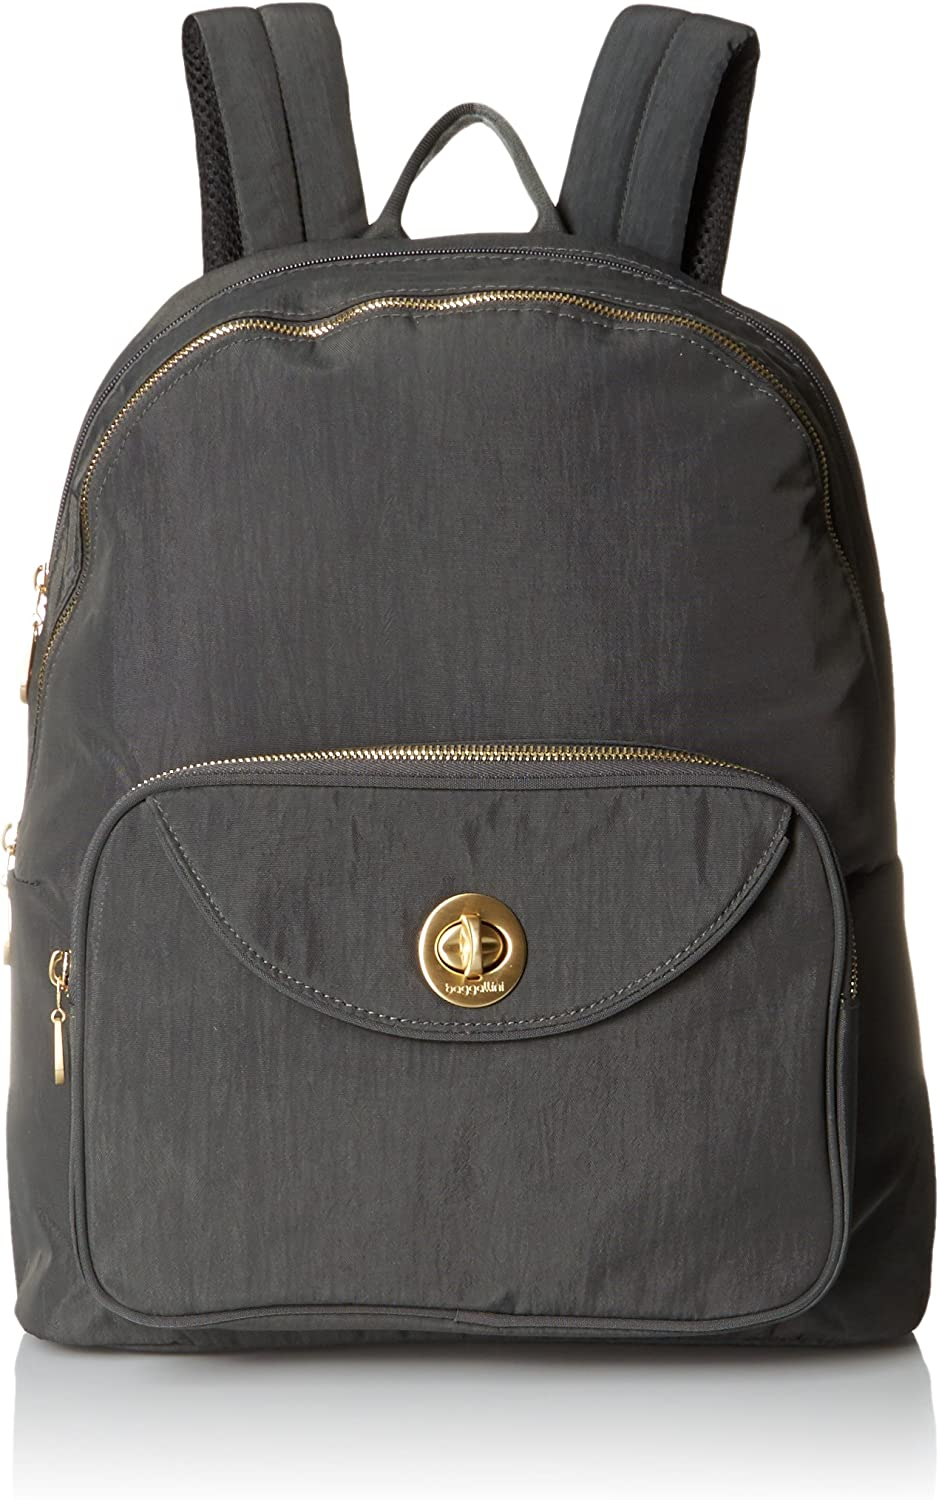 Baggallini Brussels Laptop Backpack Black